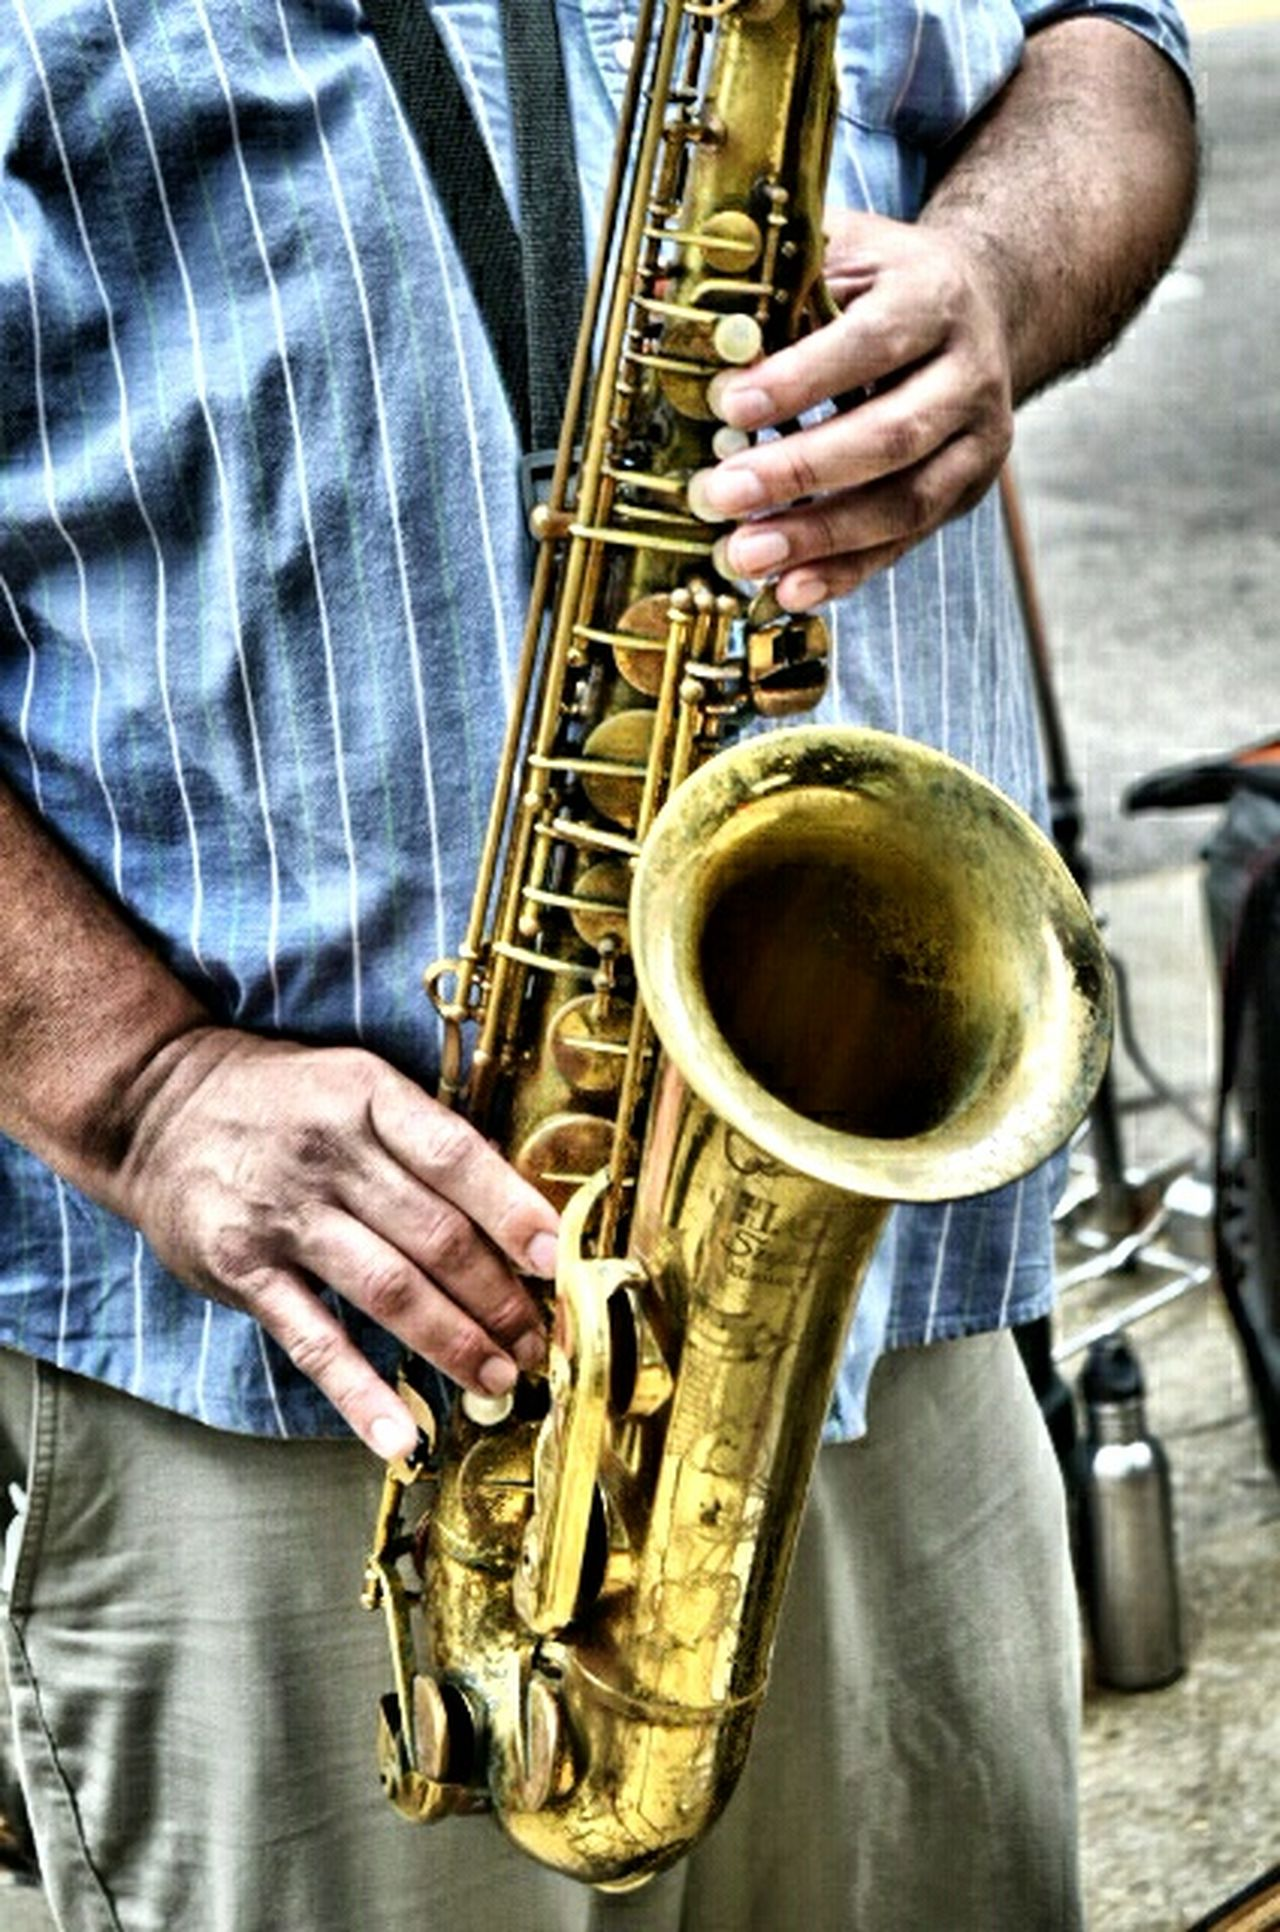 Holding Person Food And Drink Men Close-up Freshness Outdoors Beverage Temptation Indulgence Street City Life City Musician Music Sax Saxophone Saxophonist Brass Brass Instruments My Year My View